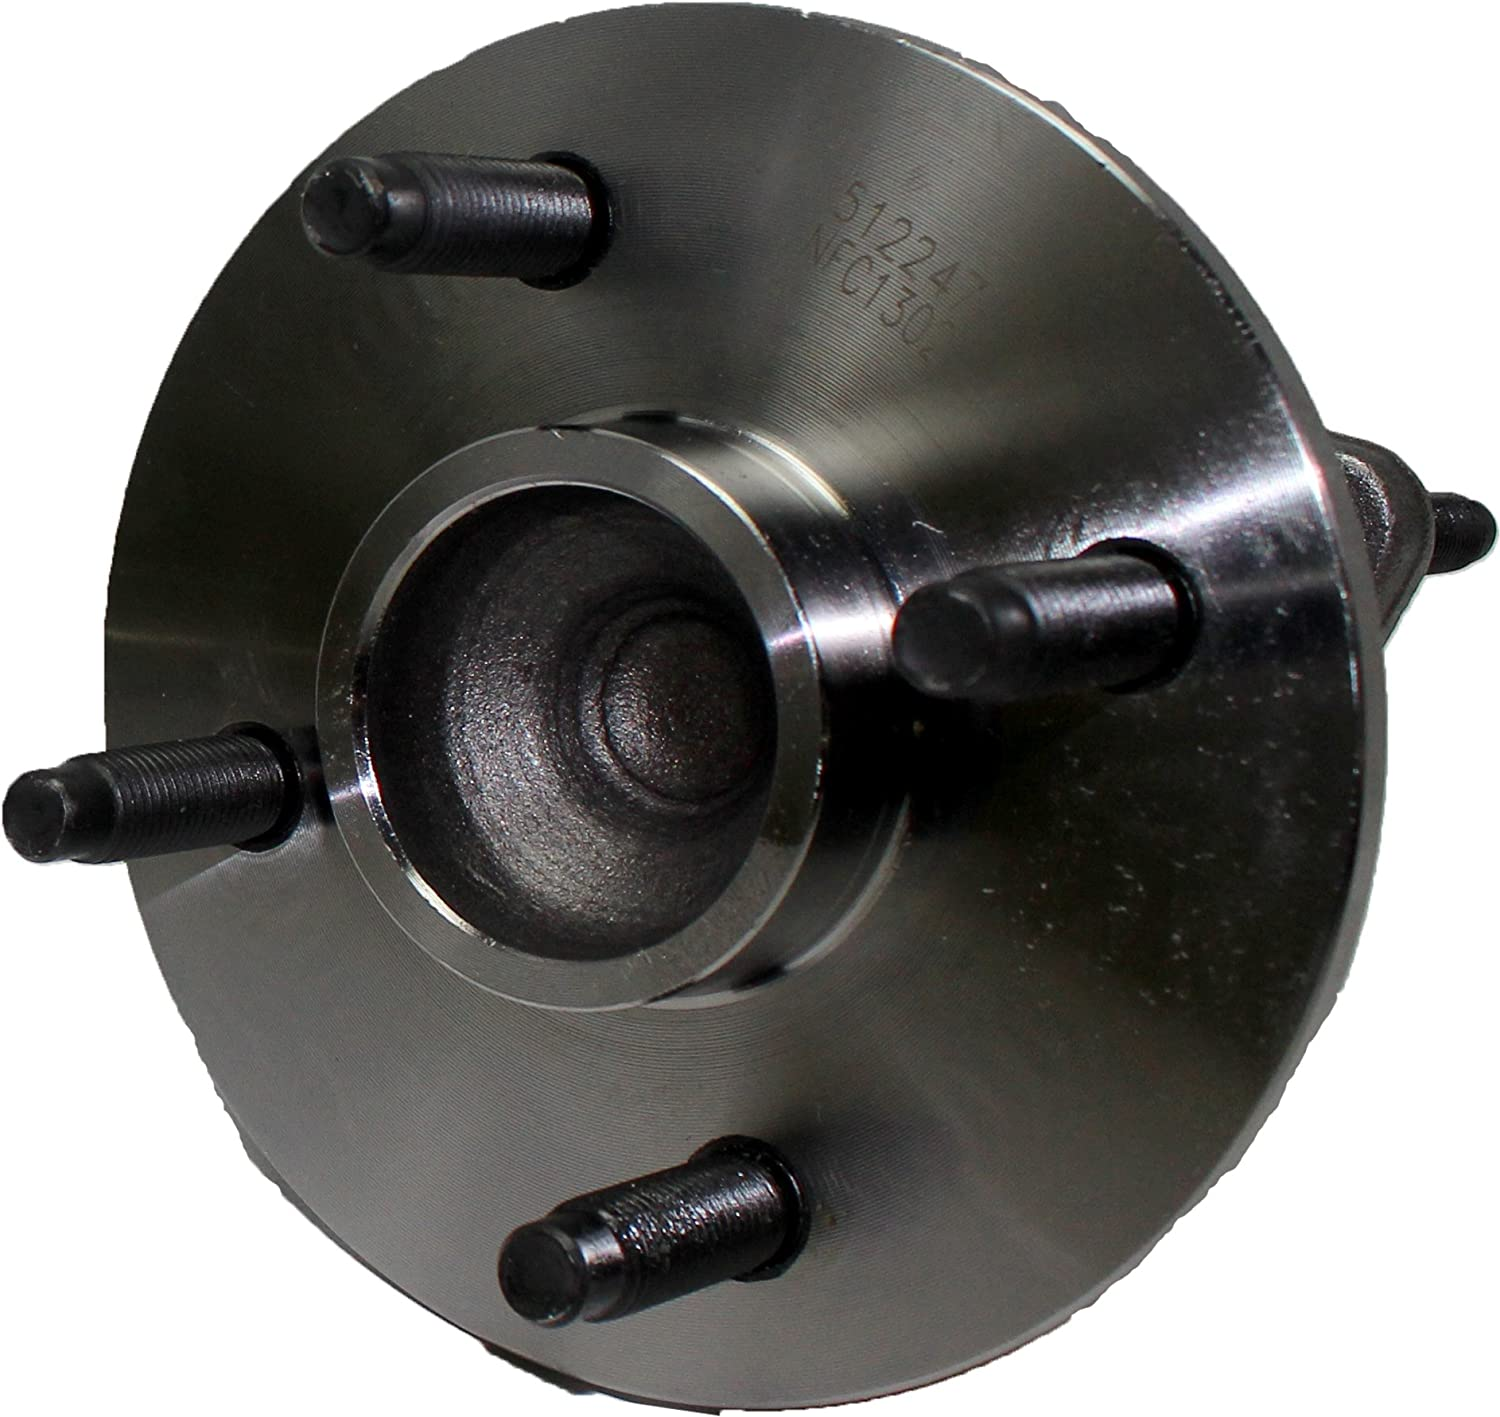 Both Pursuit; Saturn Ion Pair Rear Wheel Hub and Bearing Assembly for Chevy Cobalt; Pontiac G5 1,2,3 4 Lug W//ABS Brand New 512247 x2